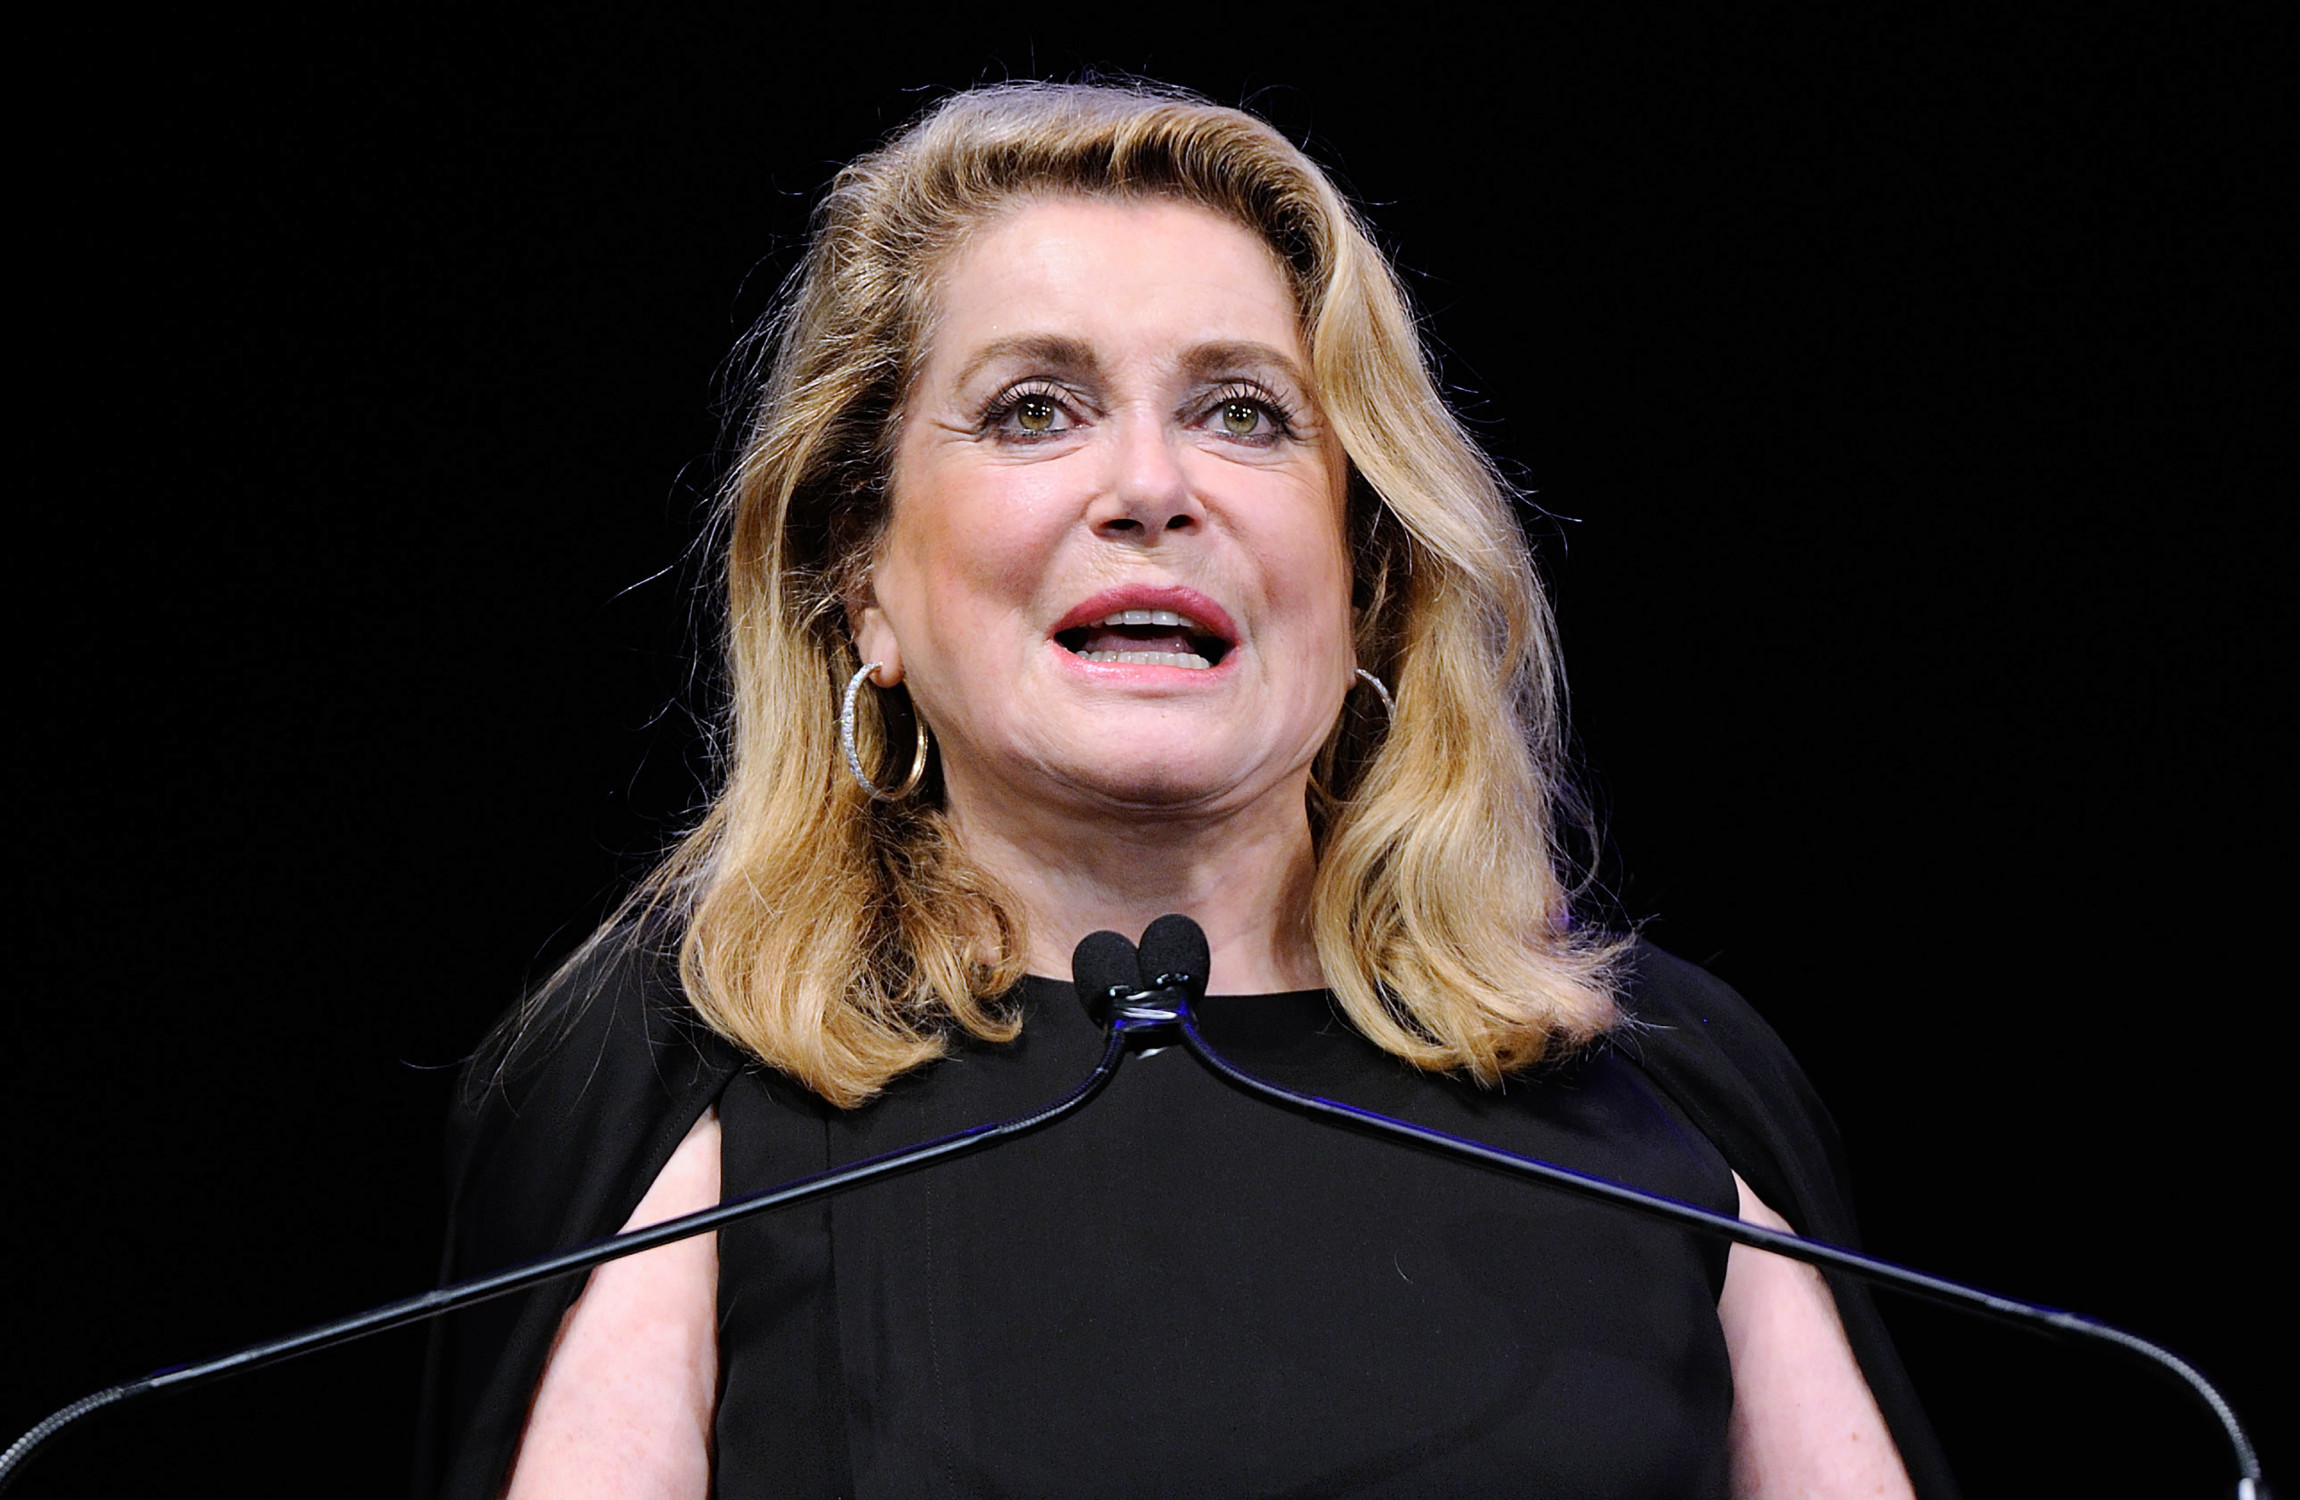 Catherine Deneuve supported the right of men to molest women